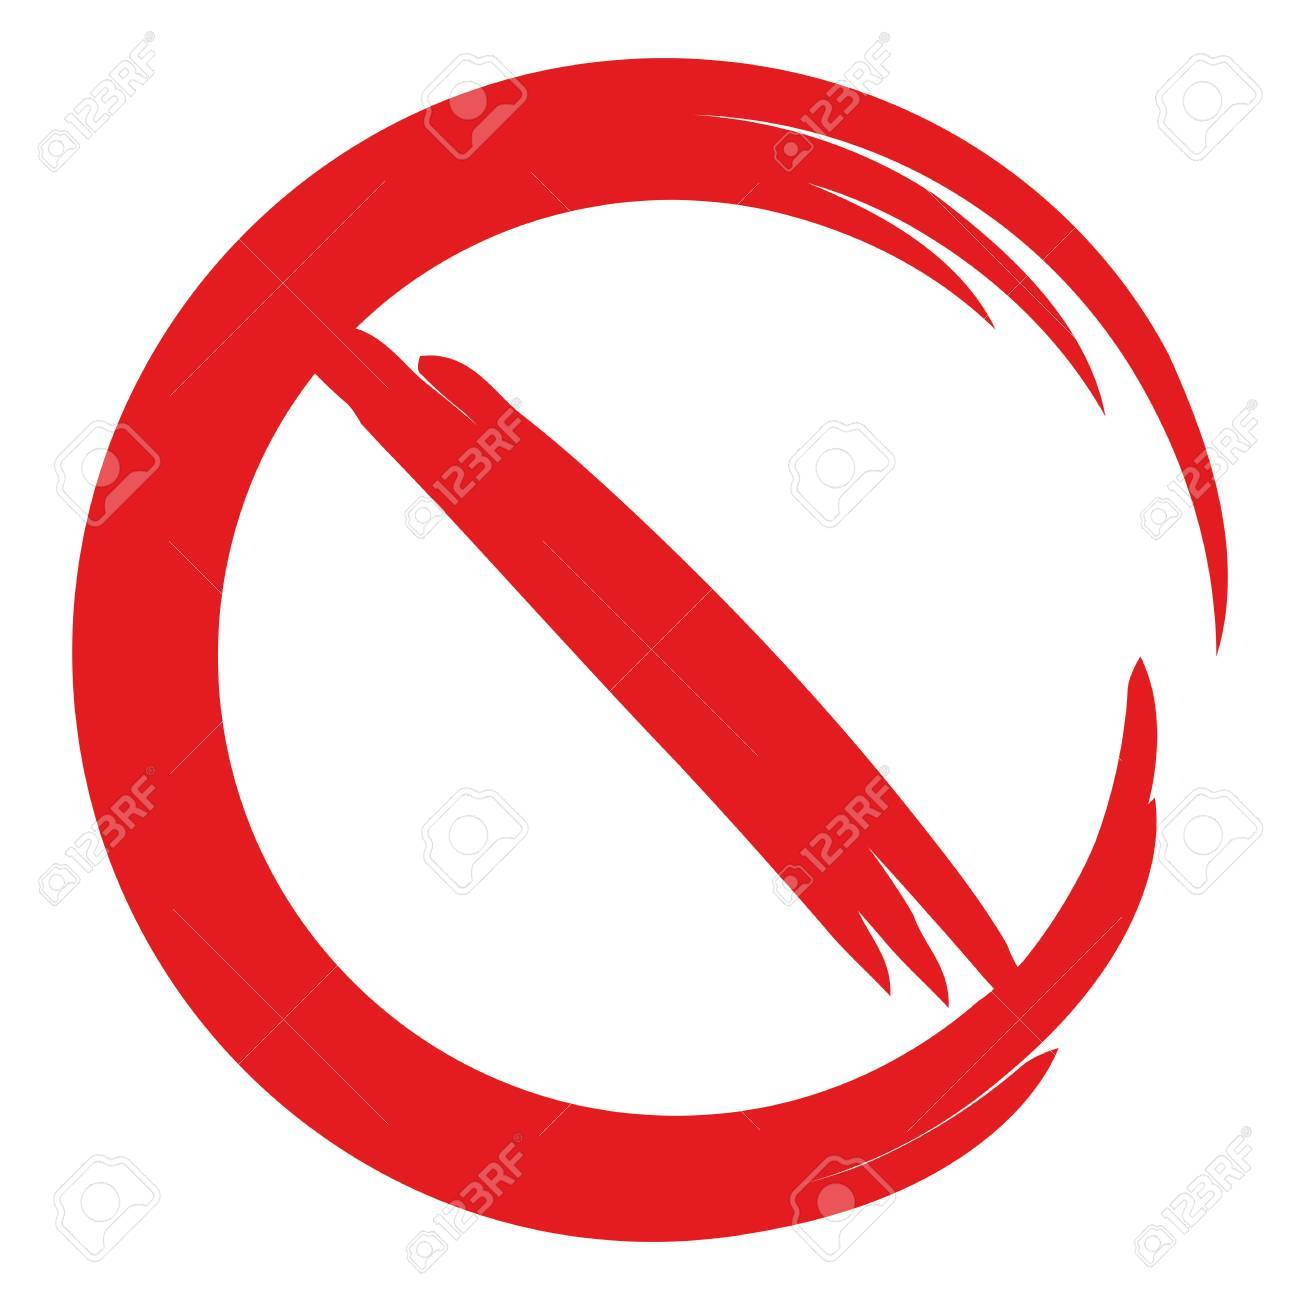 Red ban sign, stop sign.